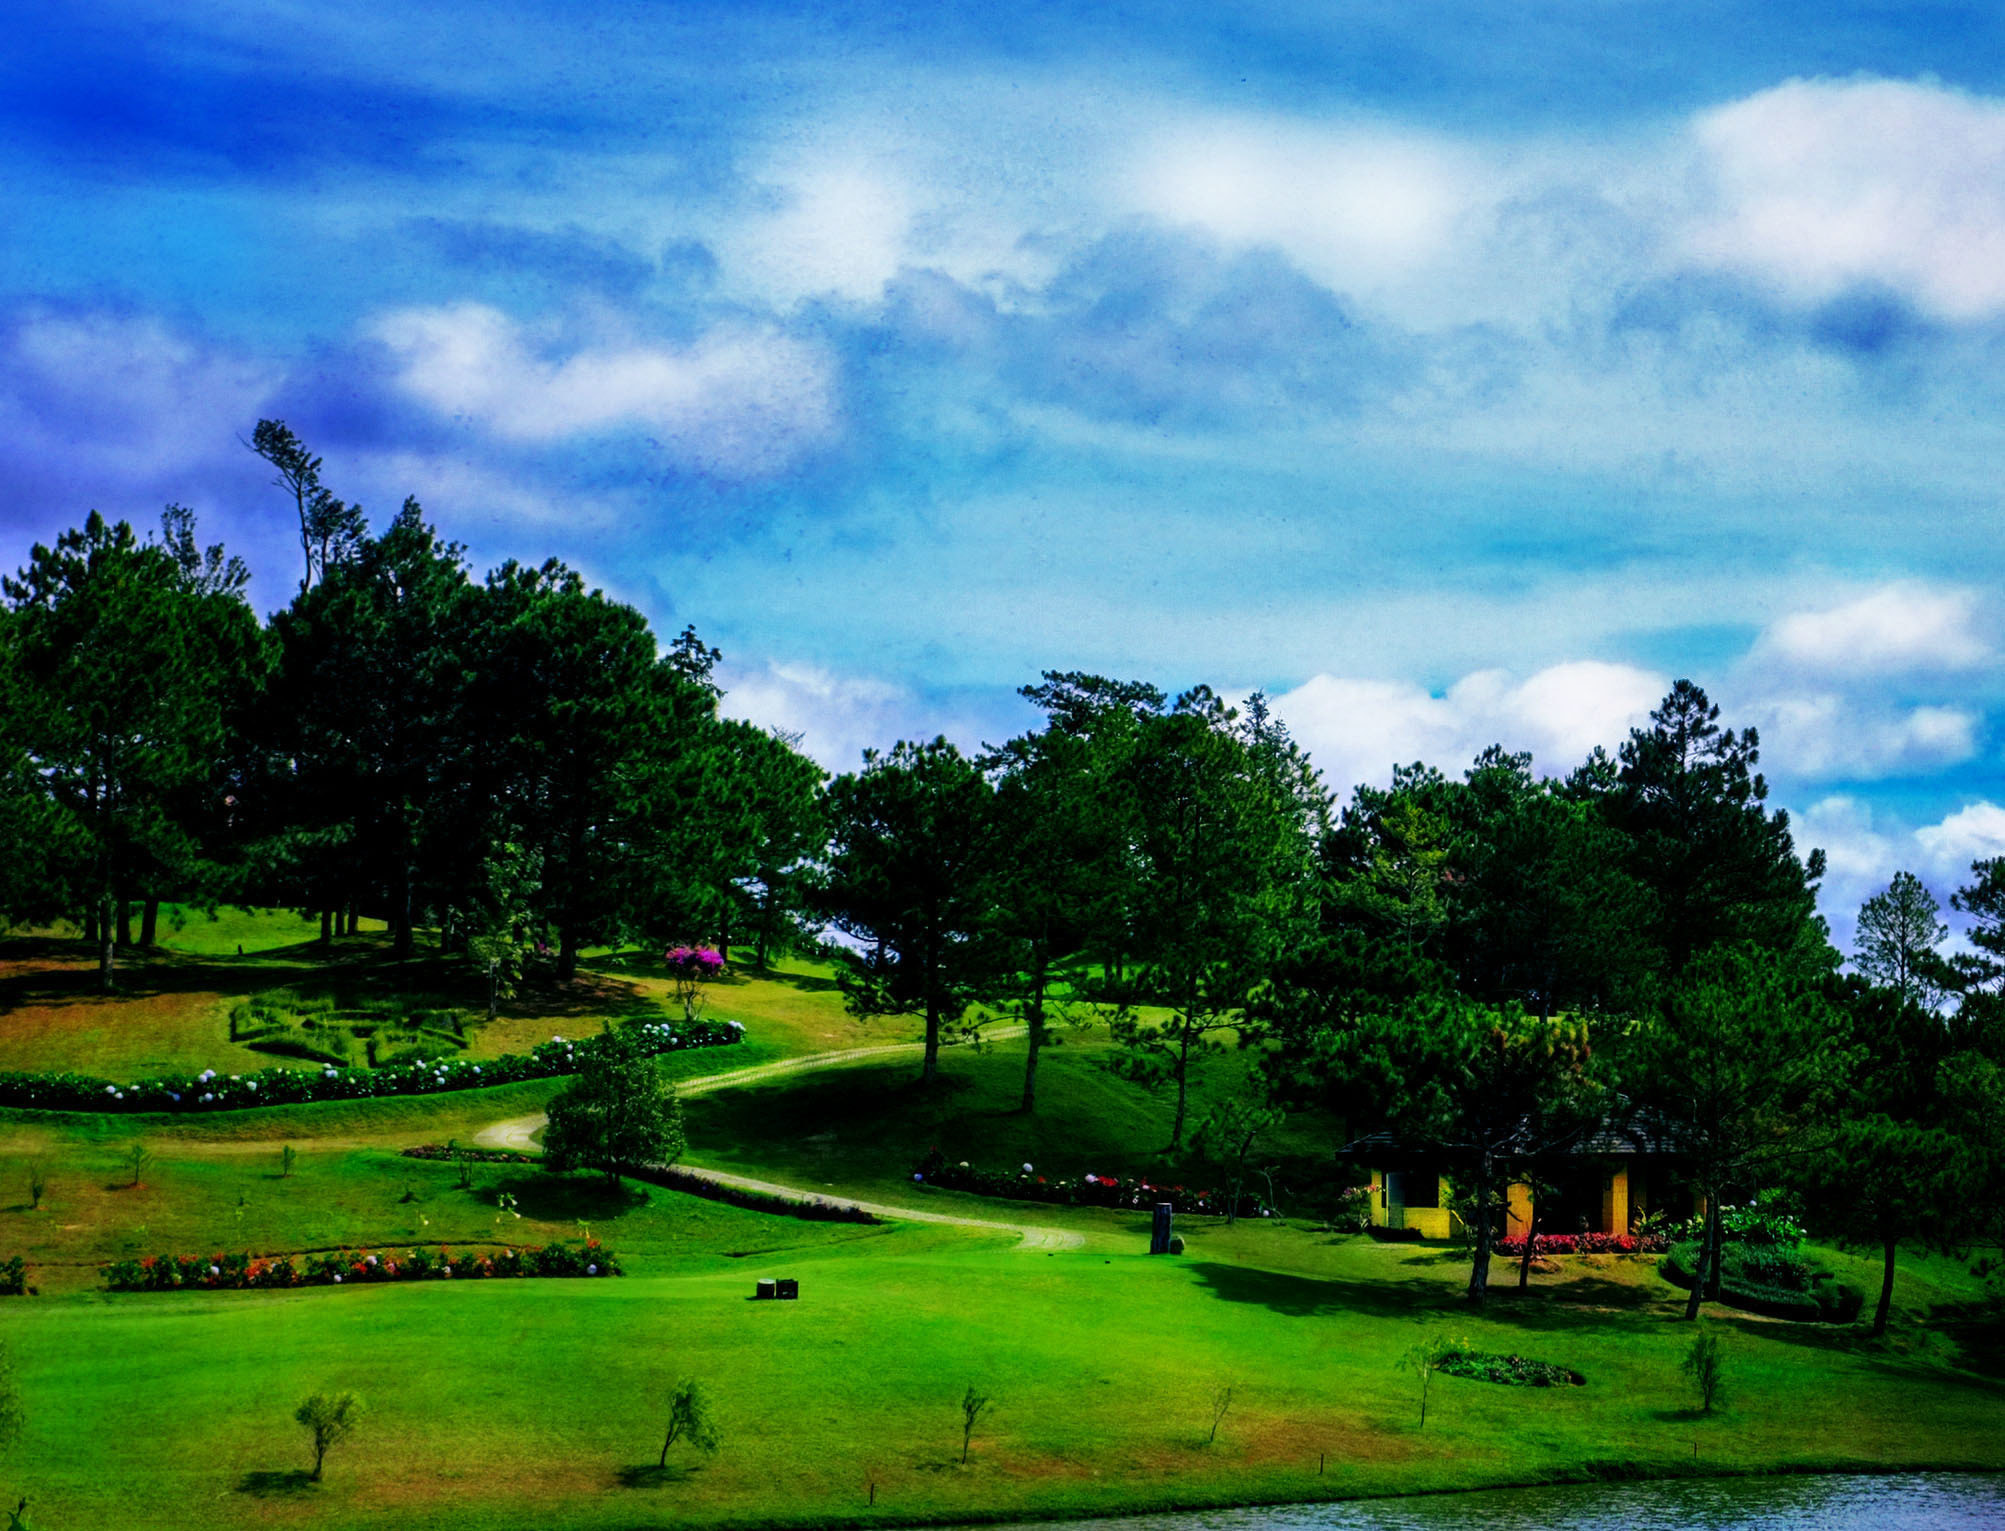 Photograph Green Hill by Viet Nguyen on 500px